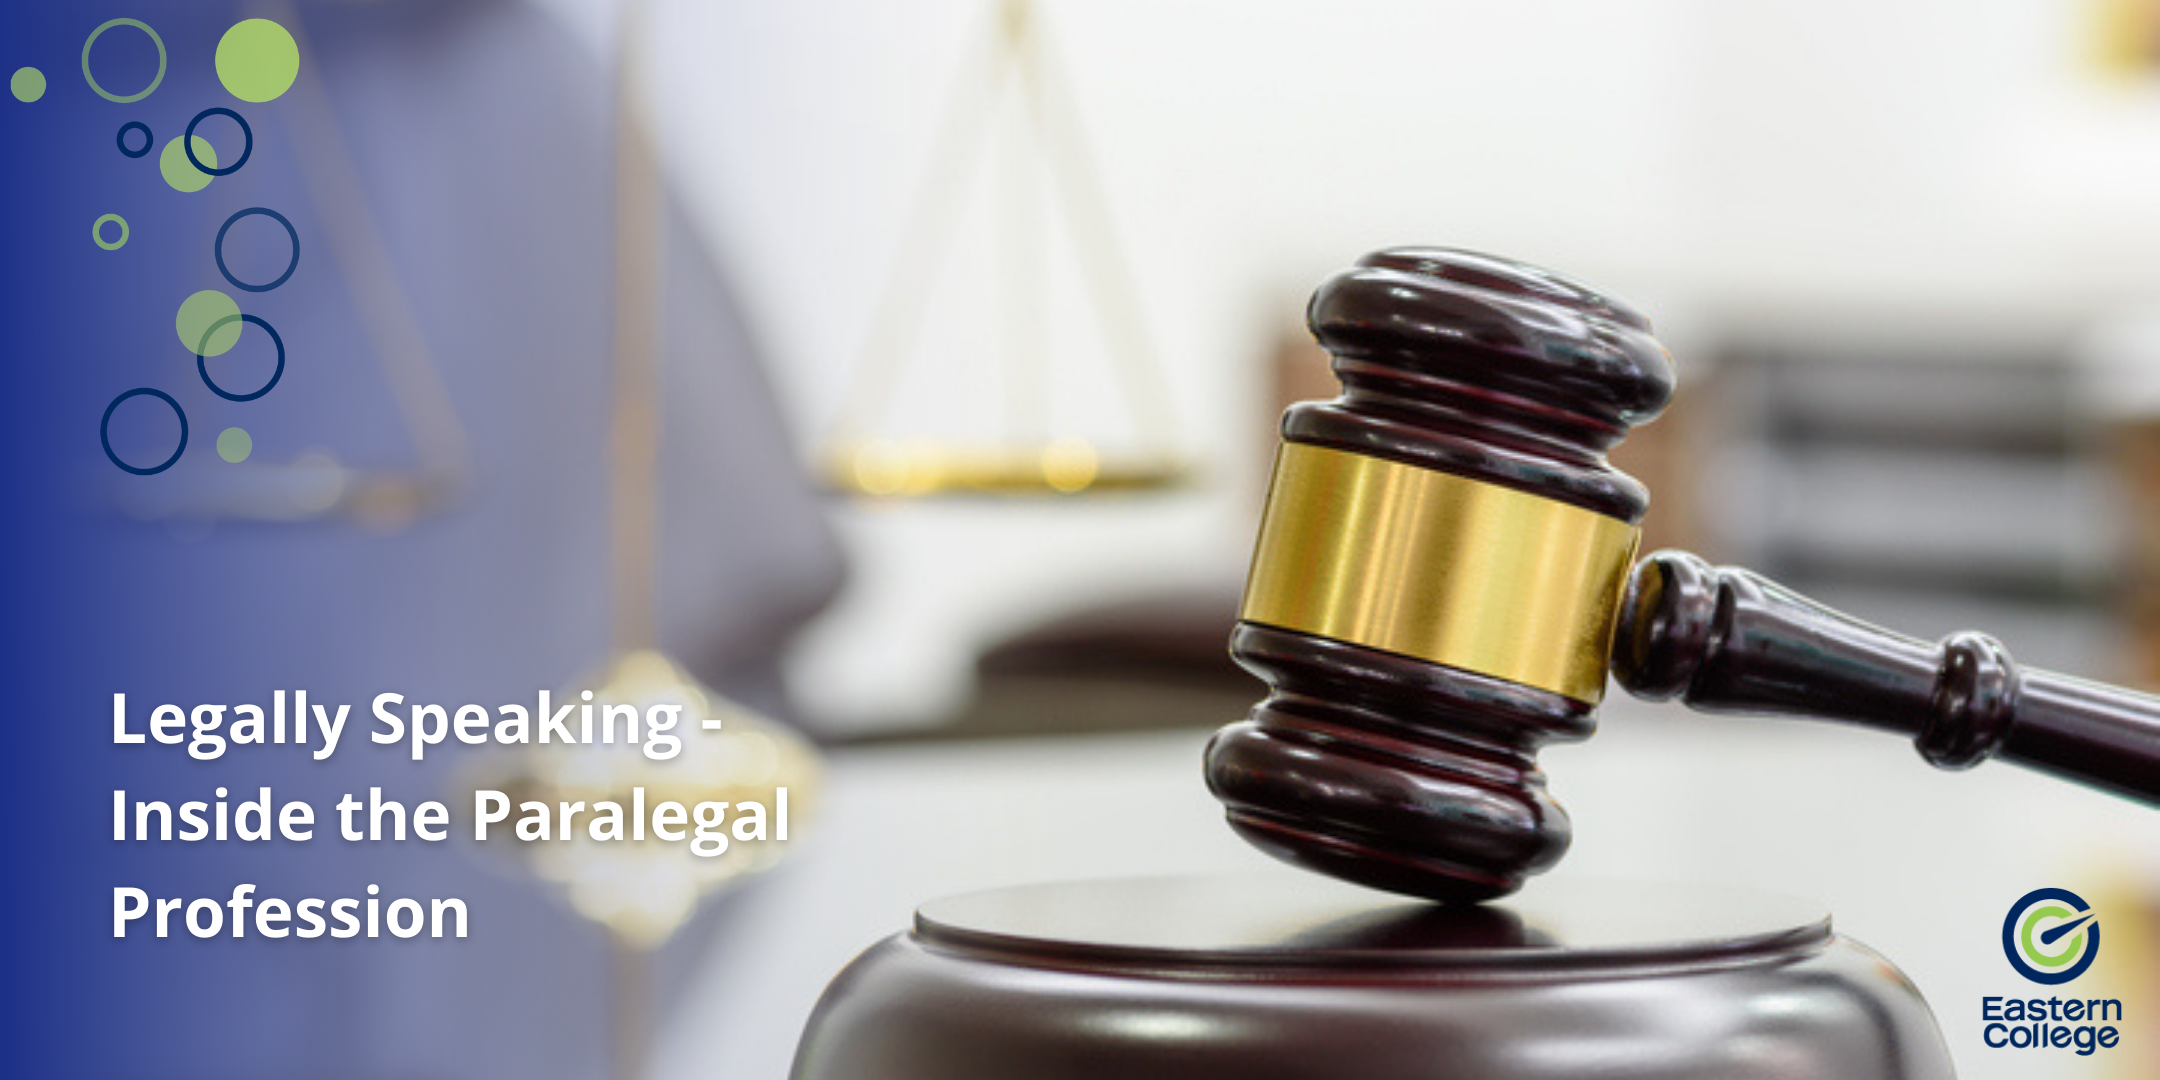 Legally Speaking – Inside the Paralegal Profession featured image